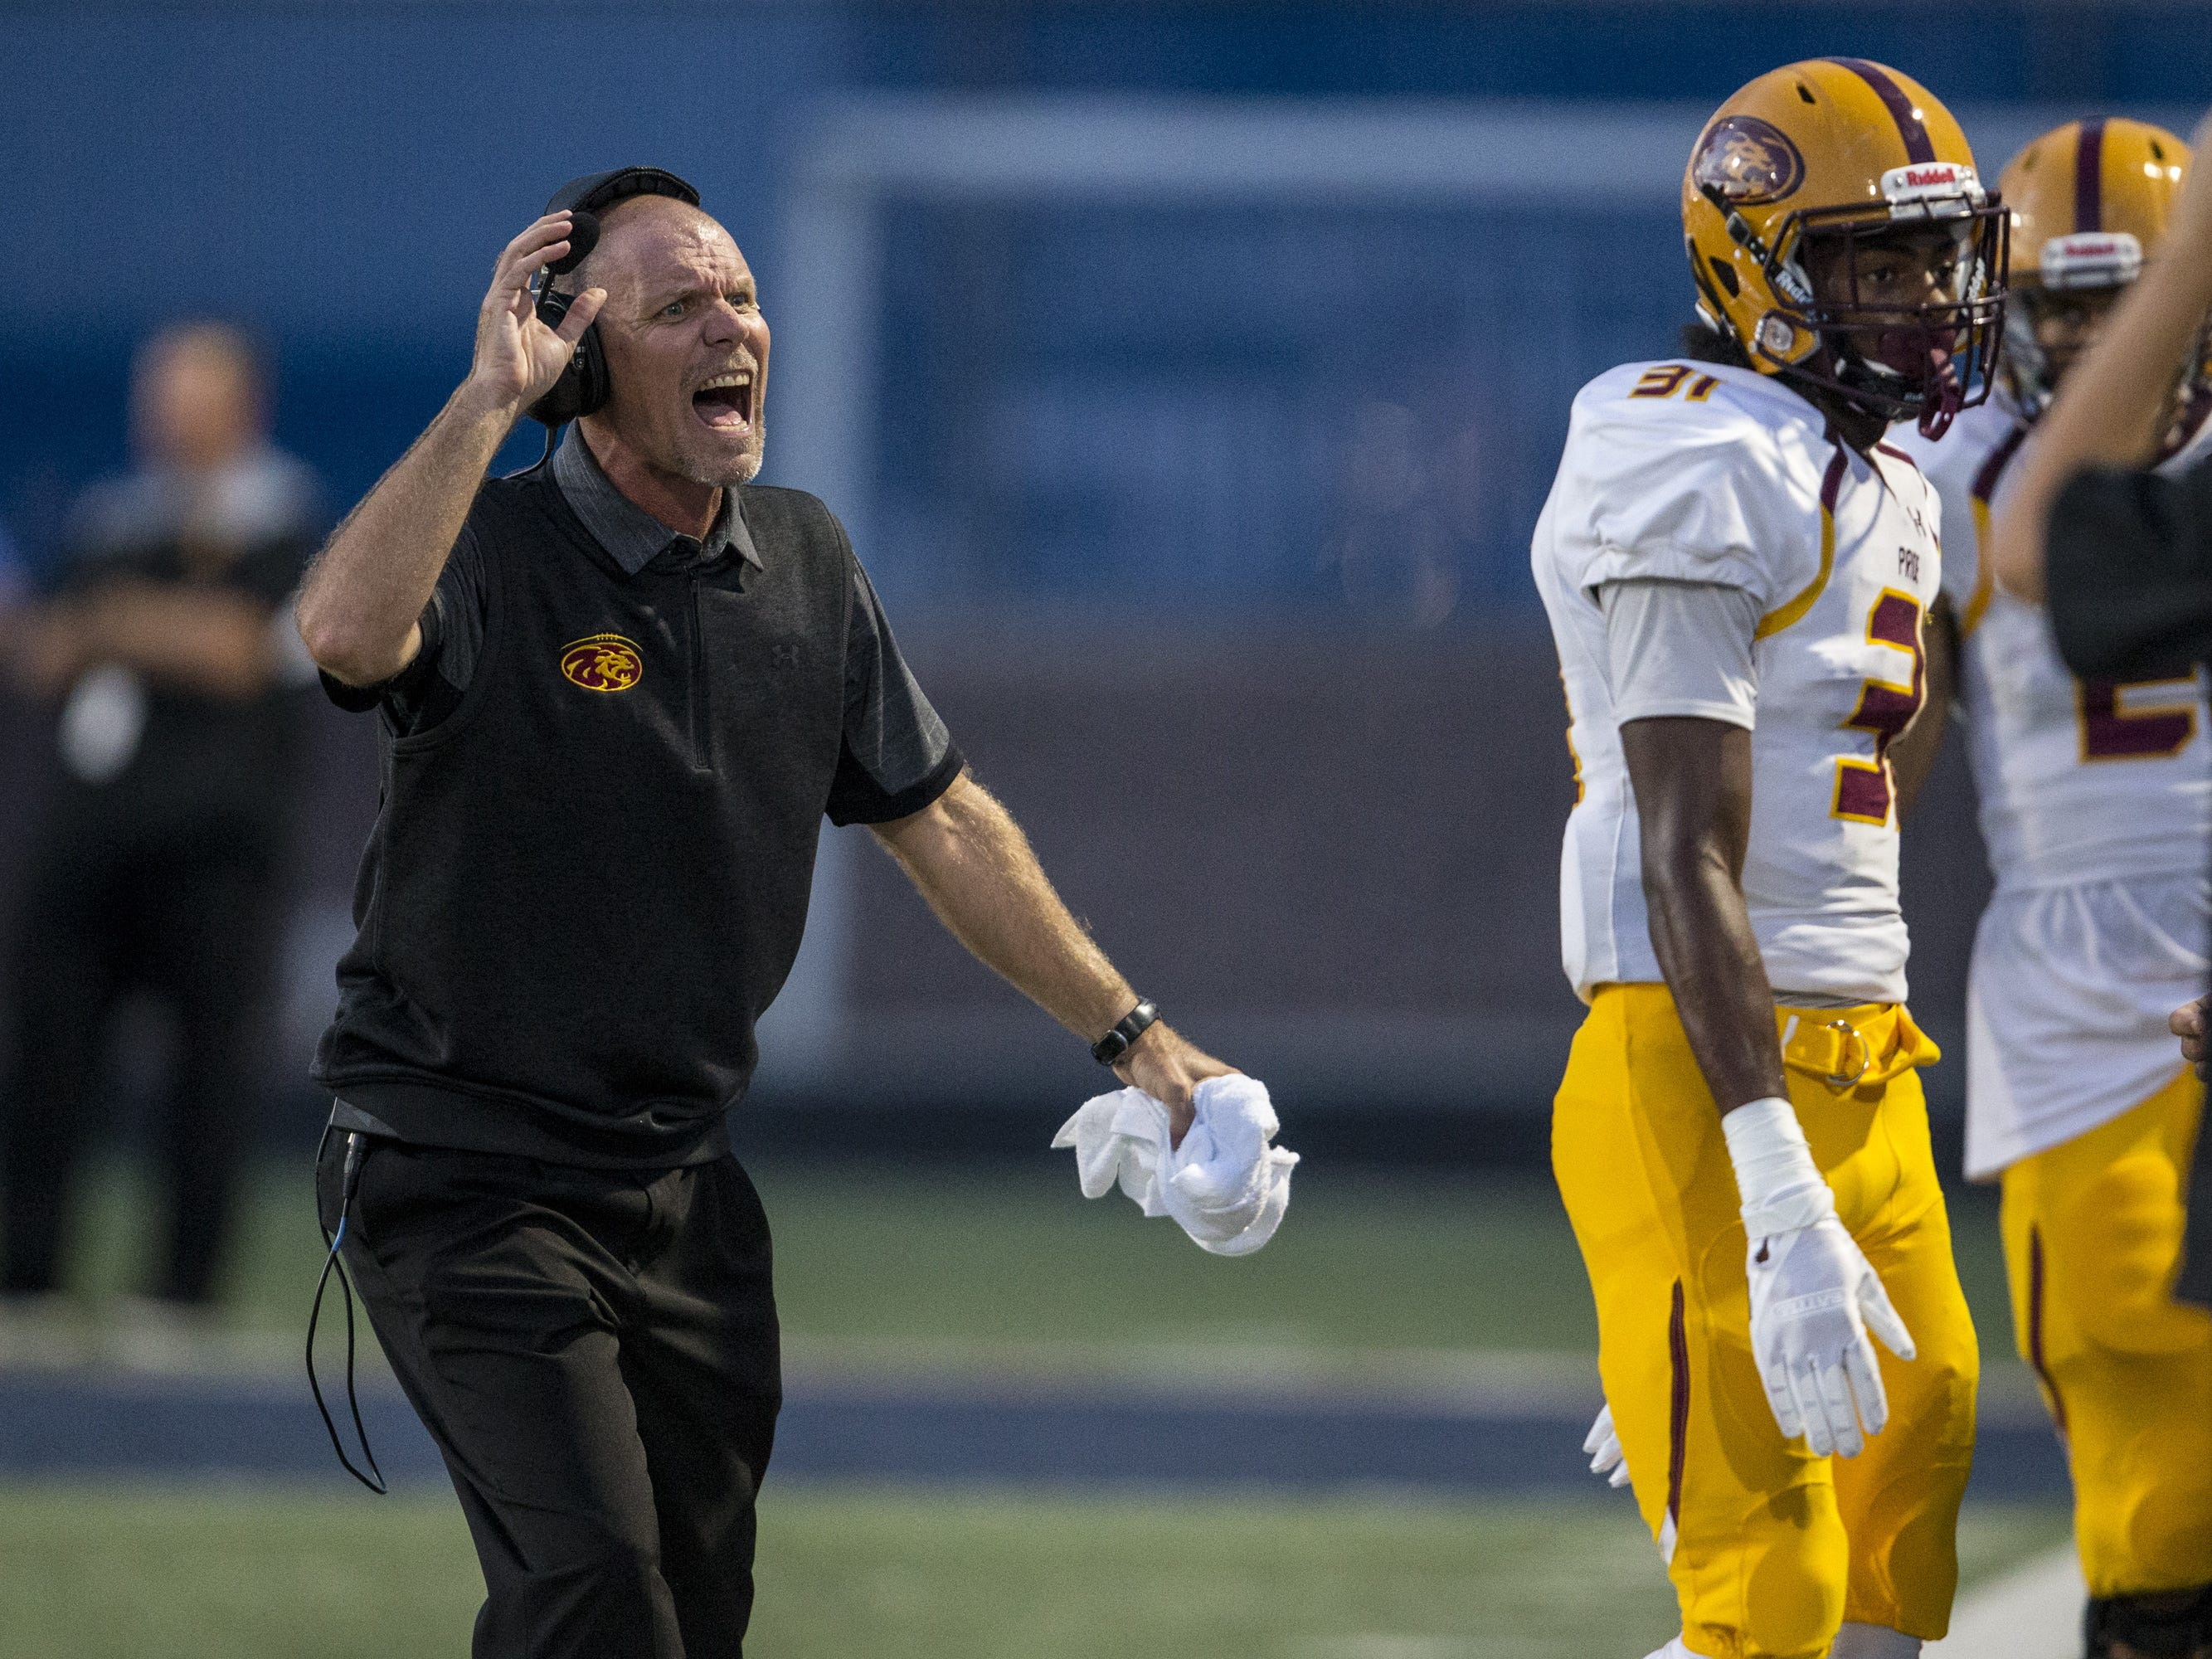 Mountain Pointe head coach Rich Wellbrock shouts during the 1st quarter against Pinnacle on Friday, Aug. 24, 2018, at Pinnacle High School in Phoenix.   #azhsfb